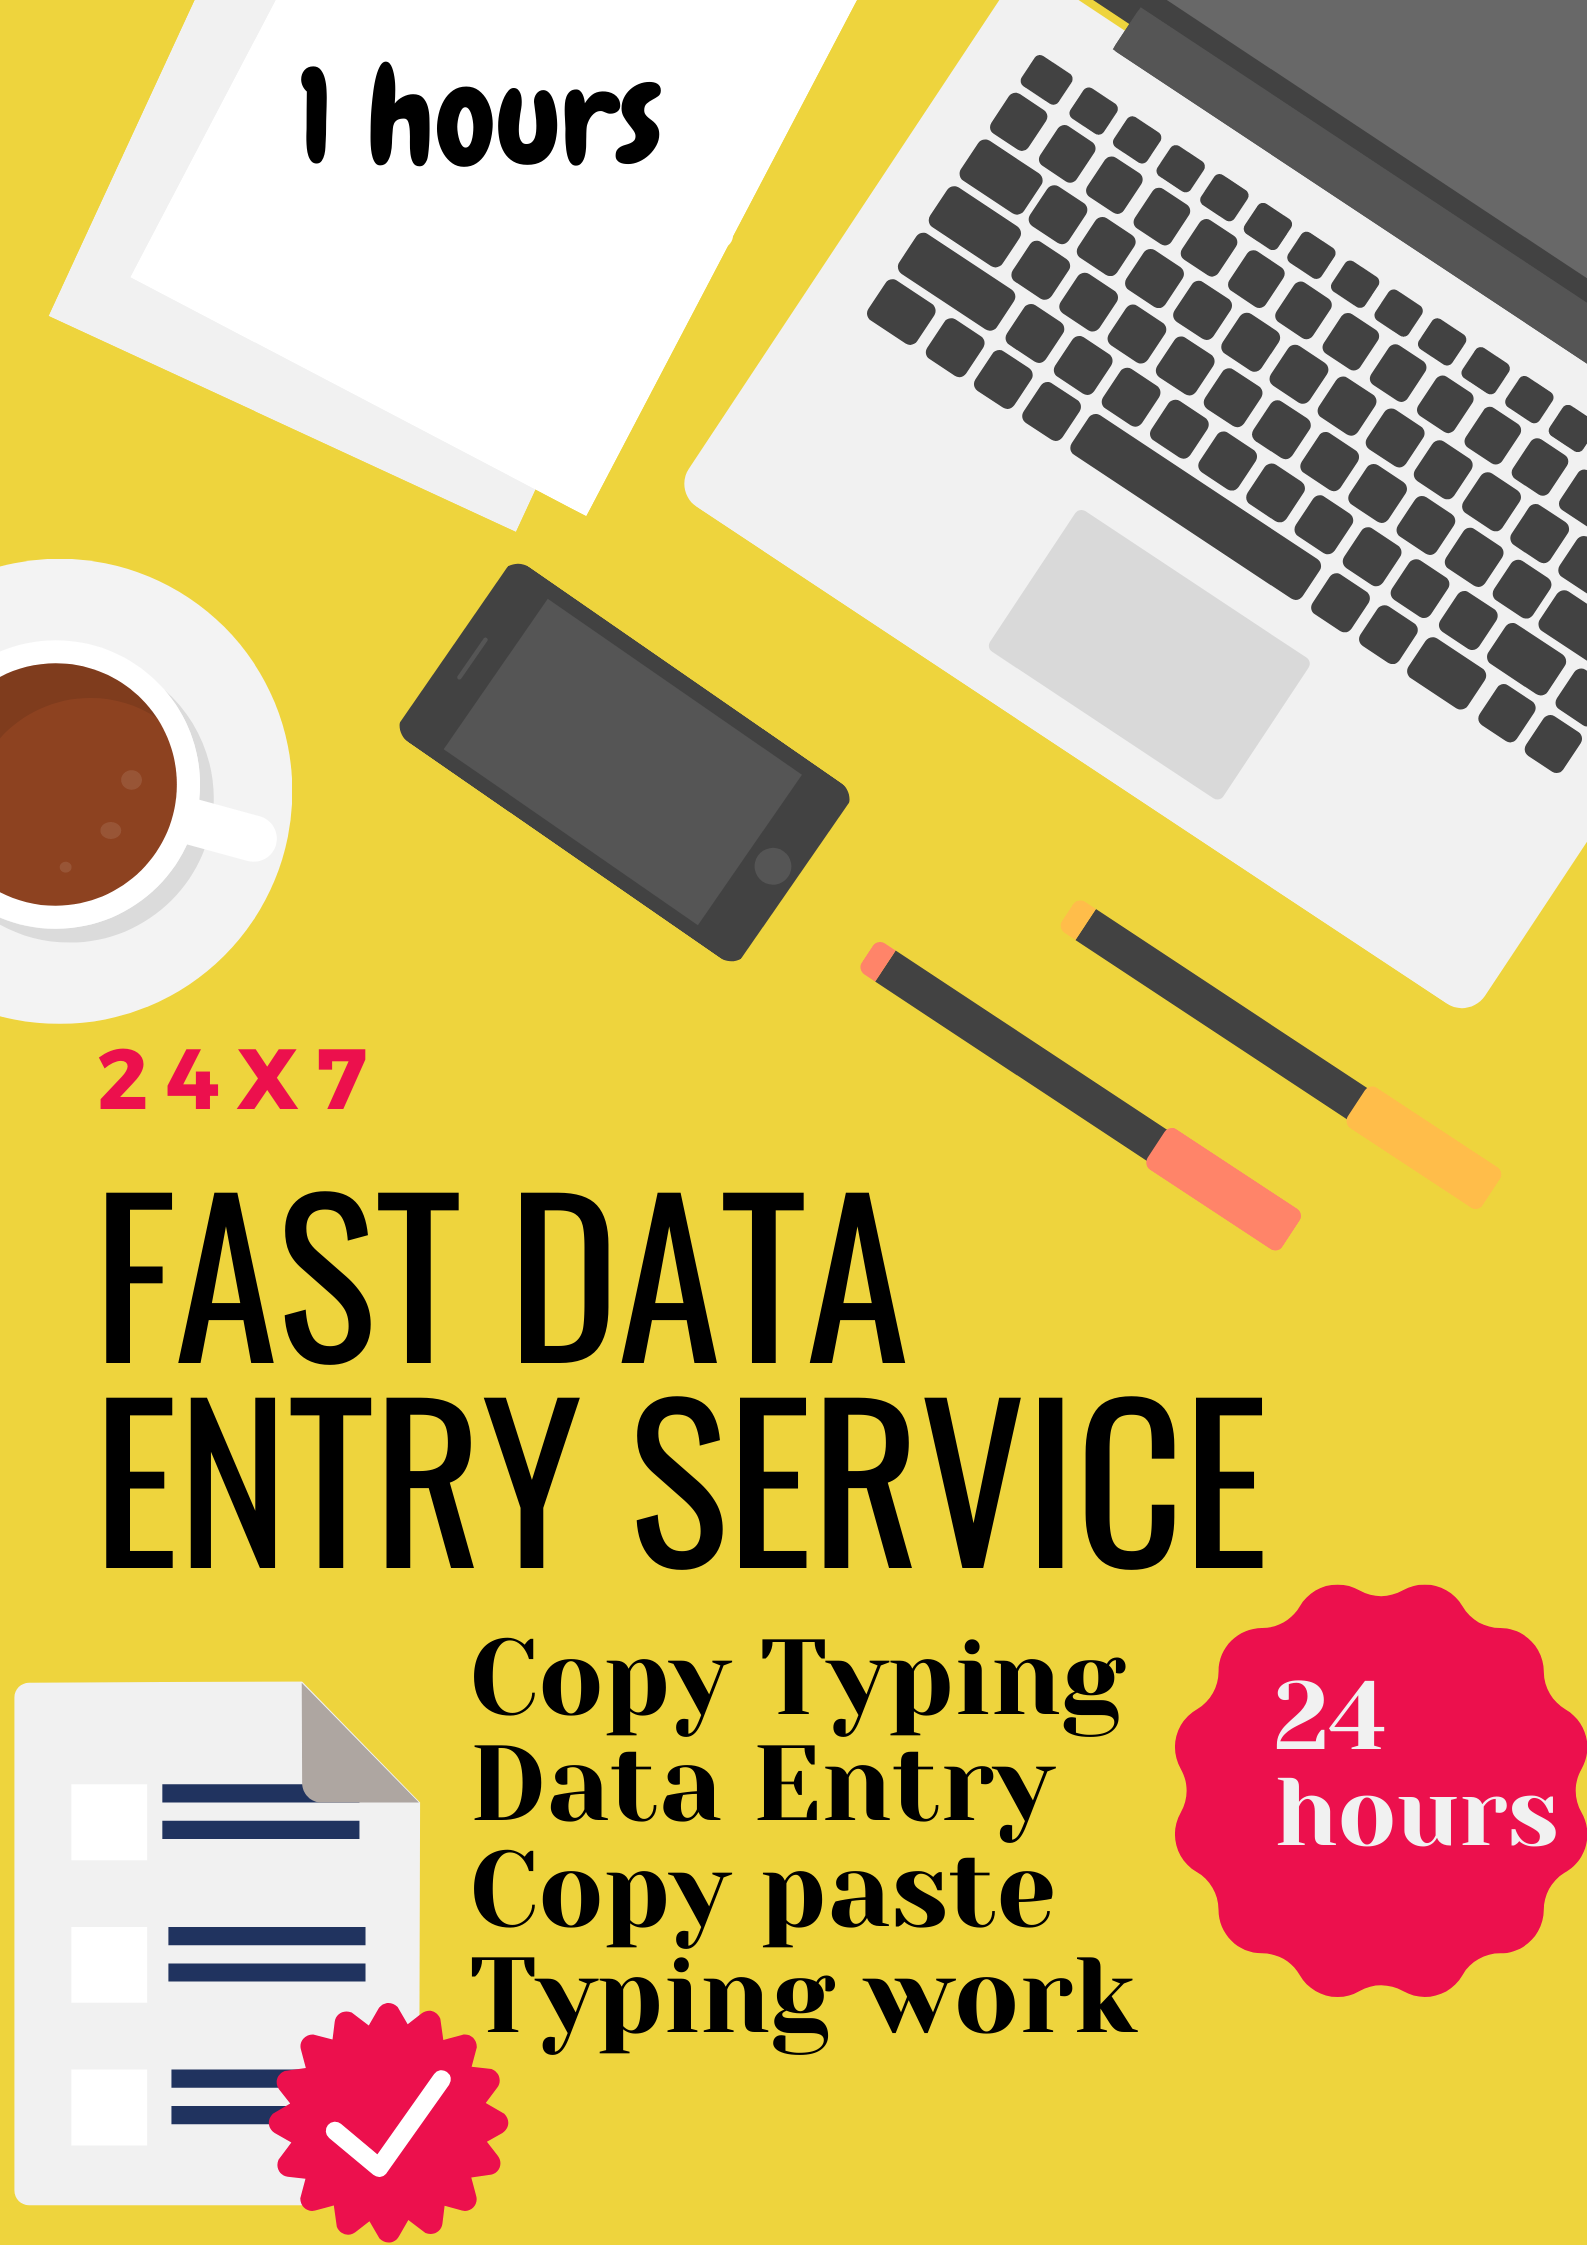 I will do best data entry, copy paste, typing